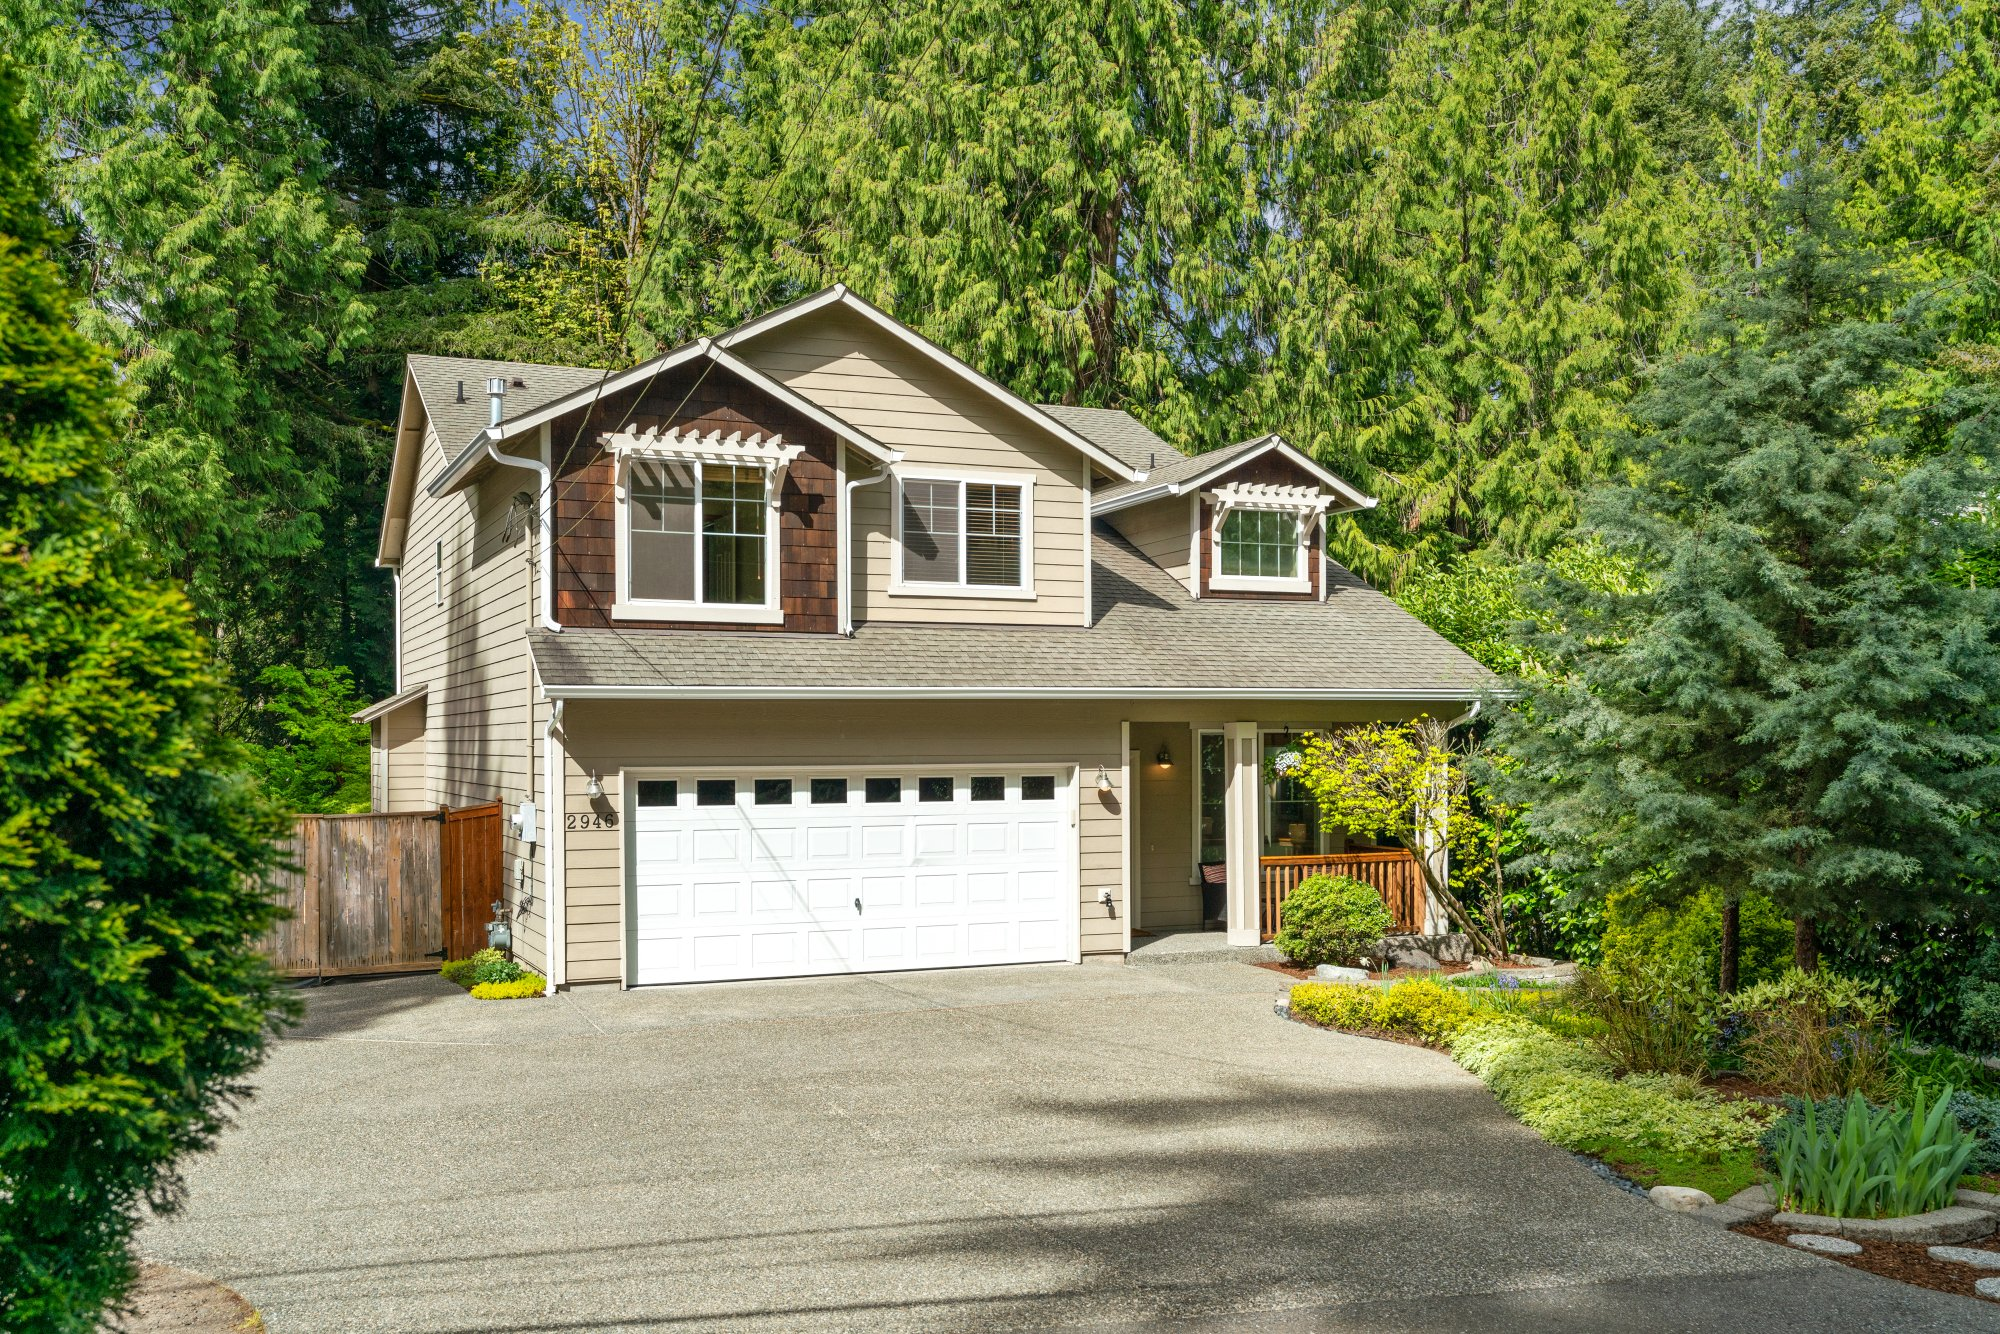 036-2946Northeast178thStreet-LakeForestPark-WA-98155-SMALL